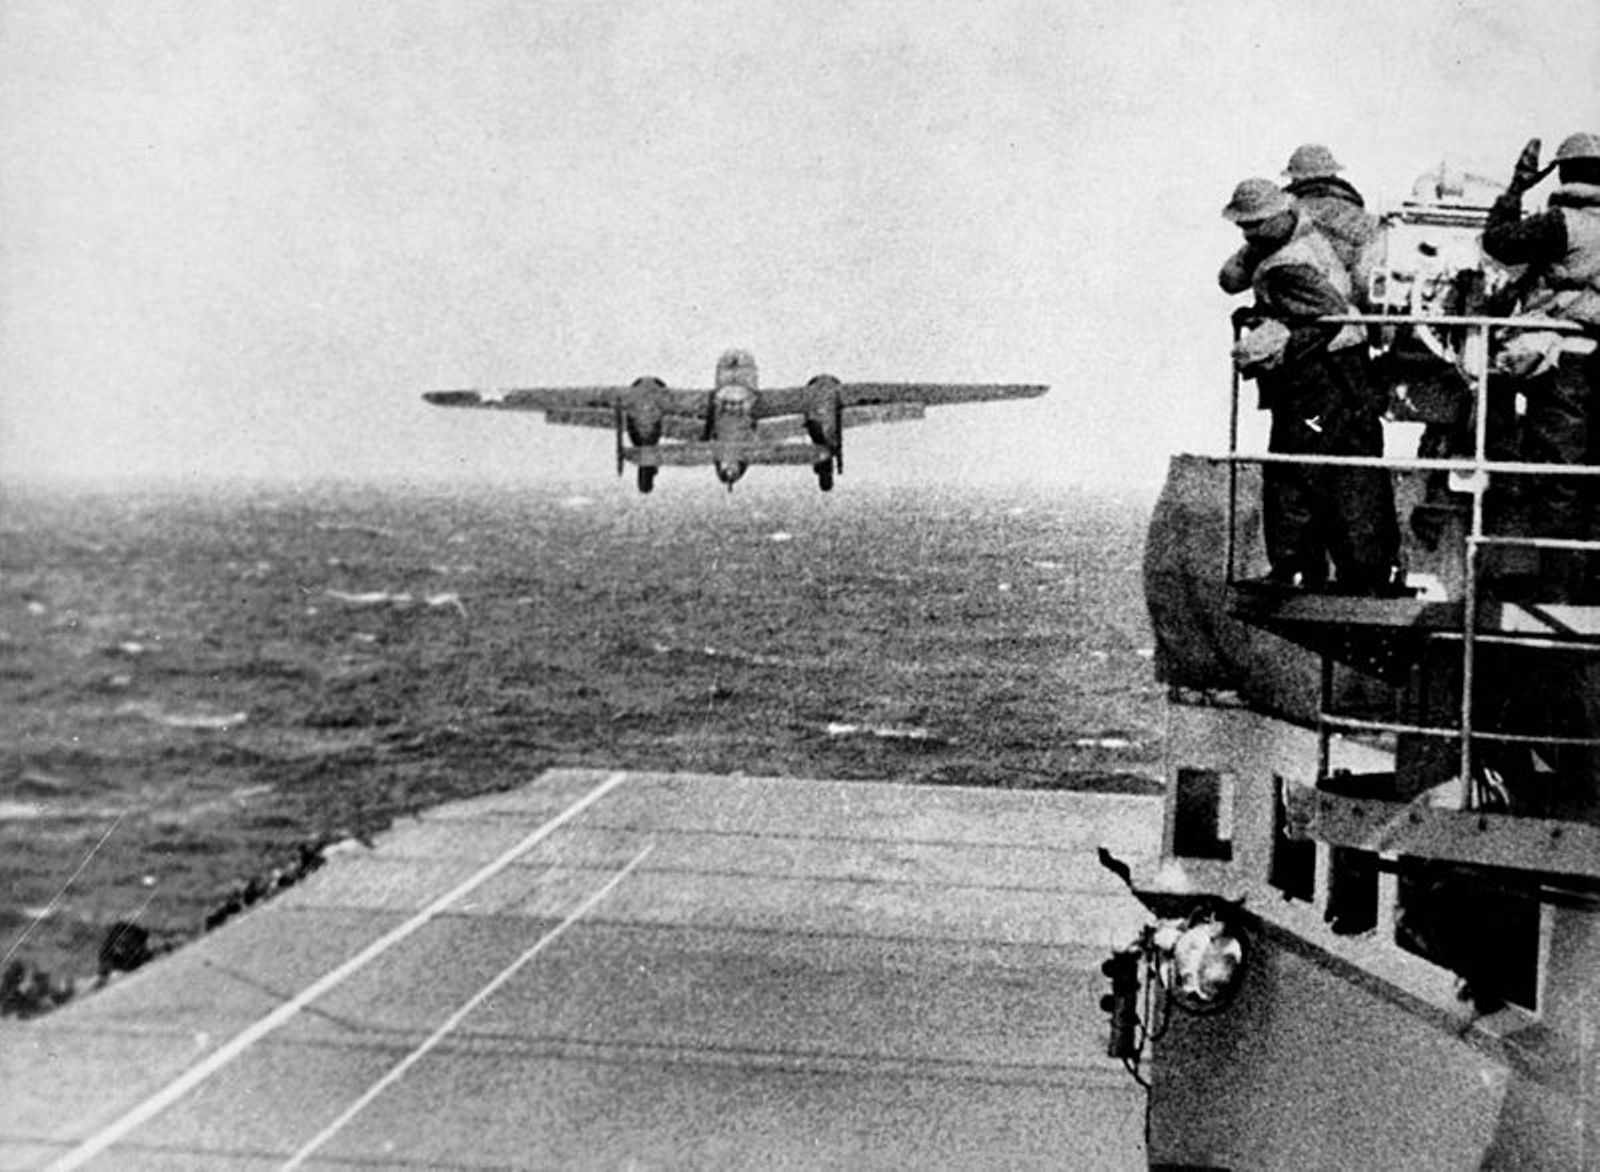 B-25 Mitchell takes off from USS Hornet, 1942.